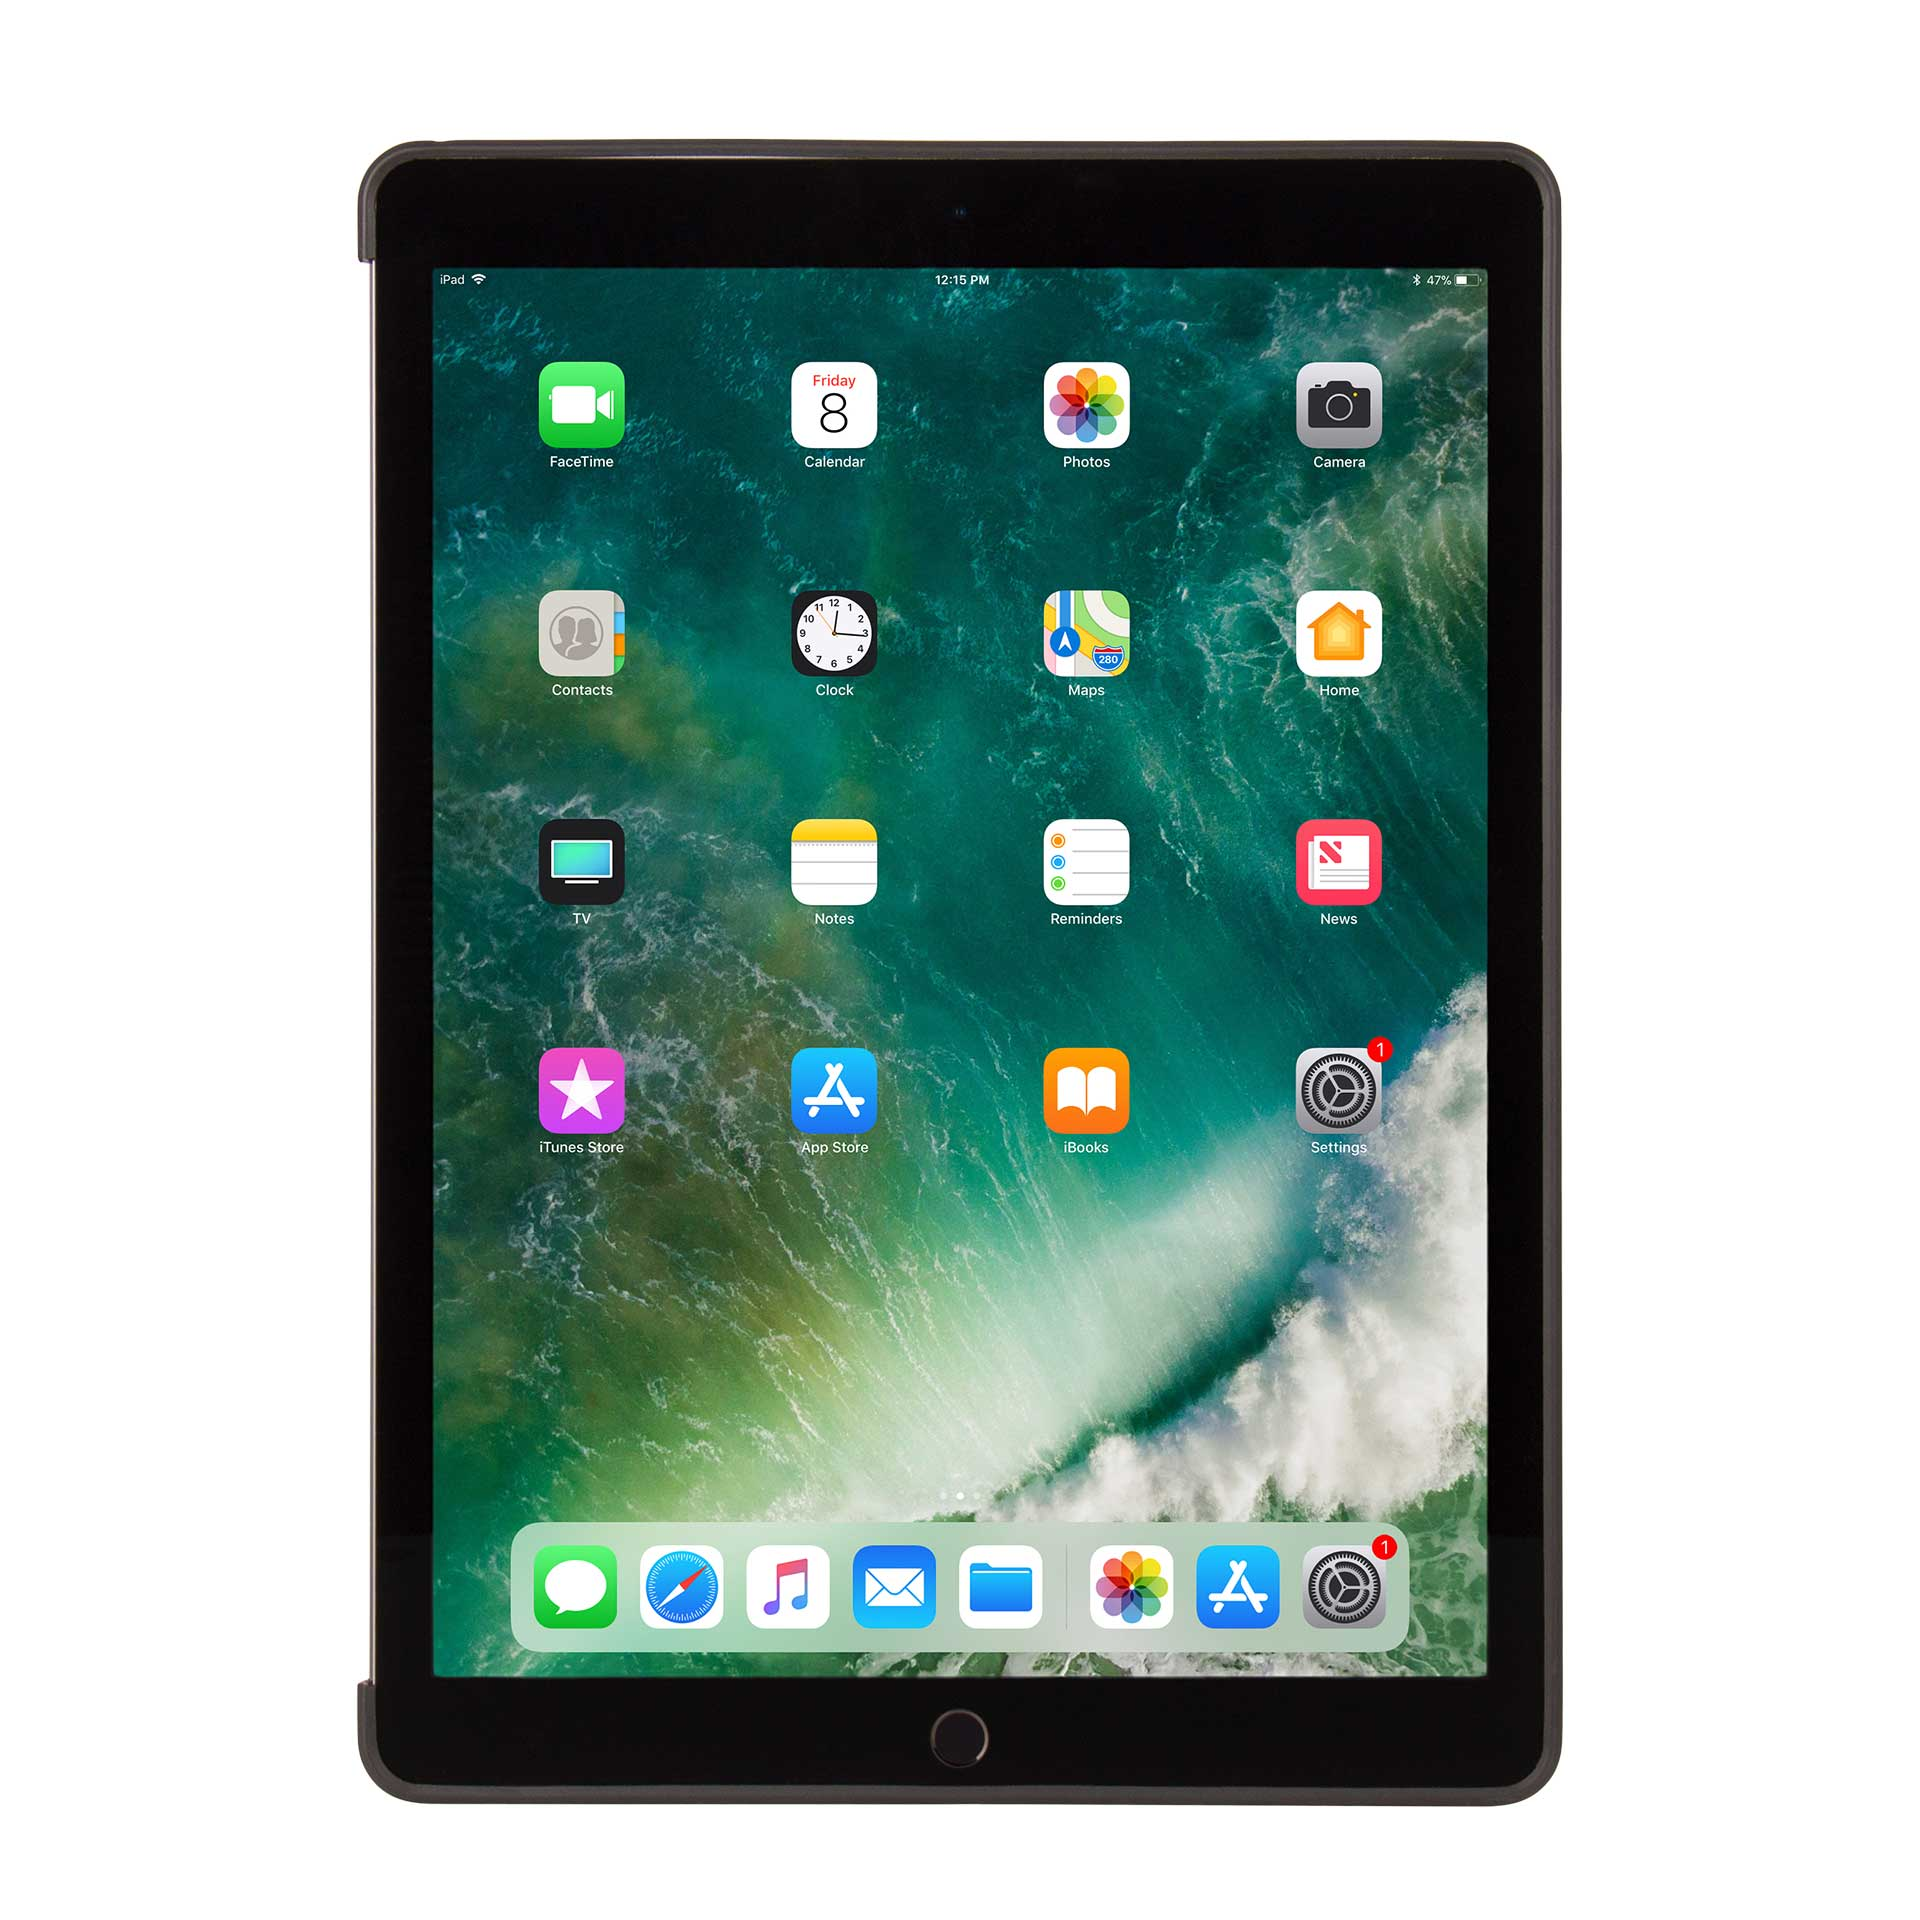 MagConnect Tray | Back Cover for iPad Pro 12.9"|1920|1920|?|en|2|61bafa60566b0d61f9a656ddd453b676|False|UNLIKELY|0.2823883295059204